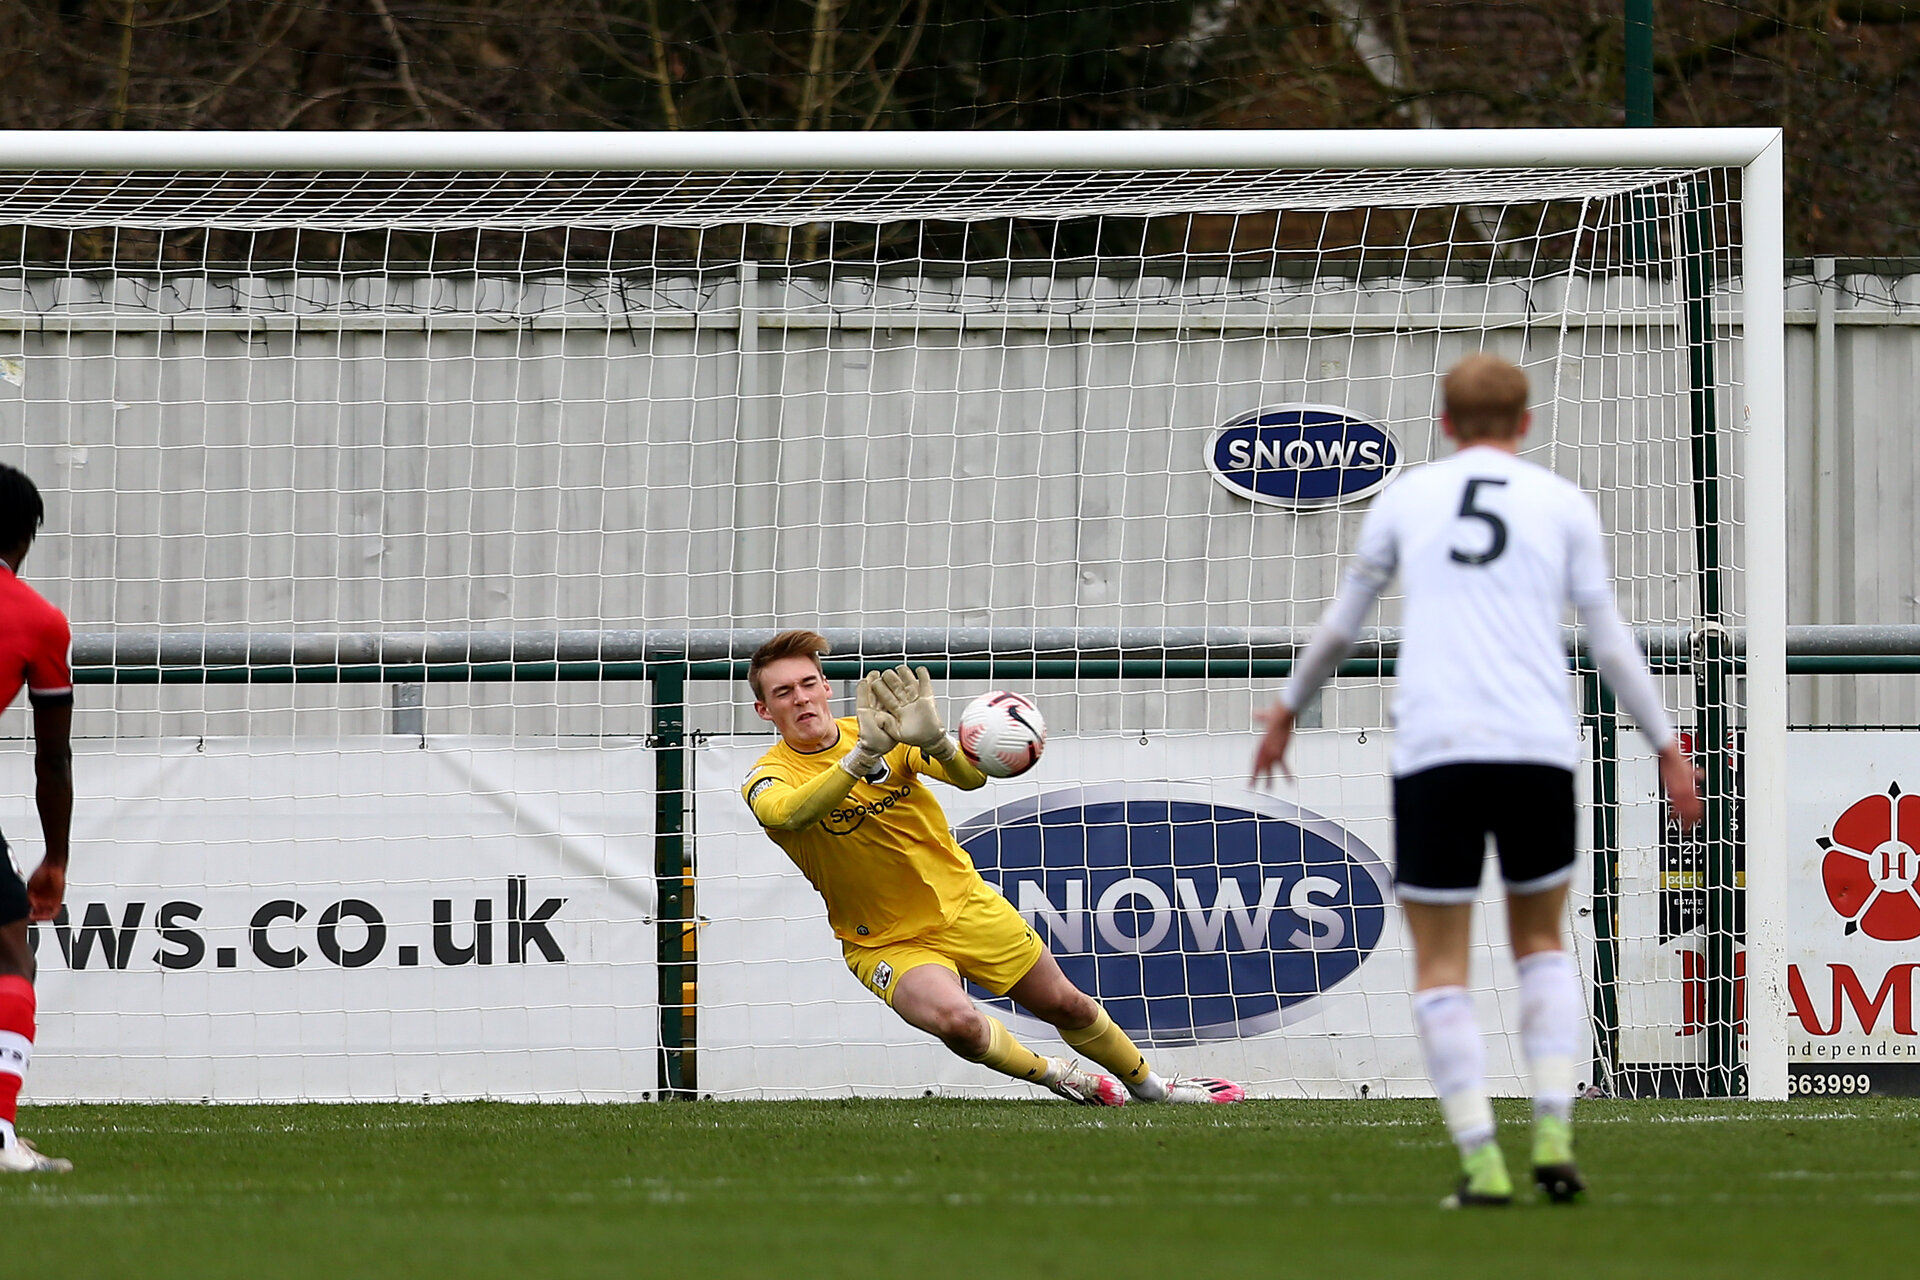 SOUTHAMPTON, ENGLAND - FEBRUARY 21: Jack Bycroft  of Southampton during Premier League 2 match between Southampton B Team and Derby County U23s at The Snows Stadium on February 21, 2021 in Southampton, England. (Photo by Isabelle Field/Southampton FC via Getty Images)